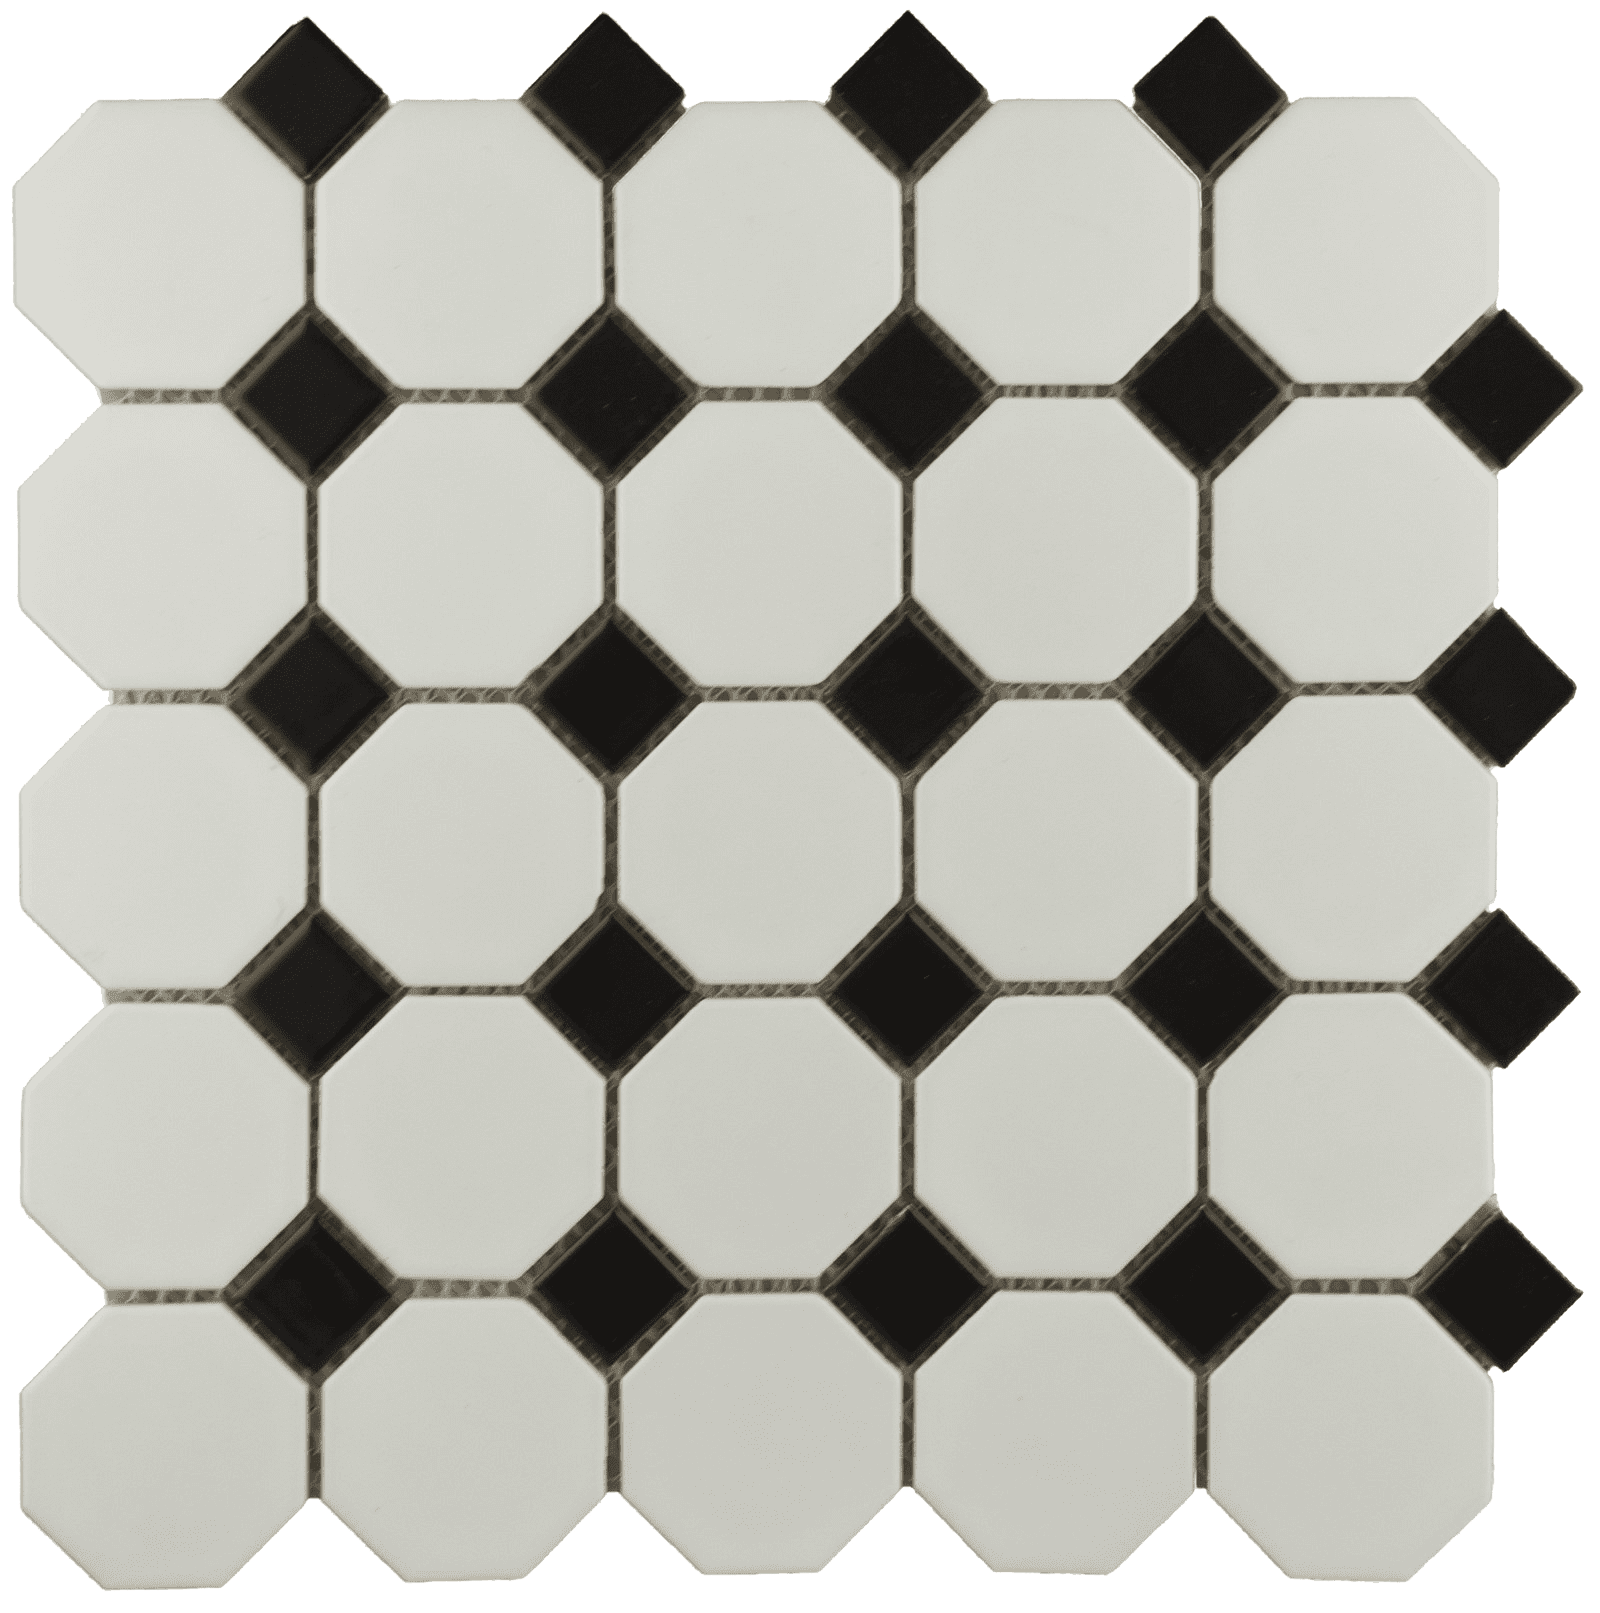 Mosaic floor png. Bally octagon black white